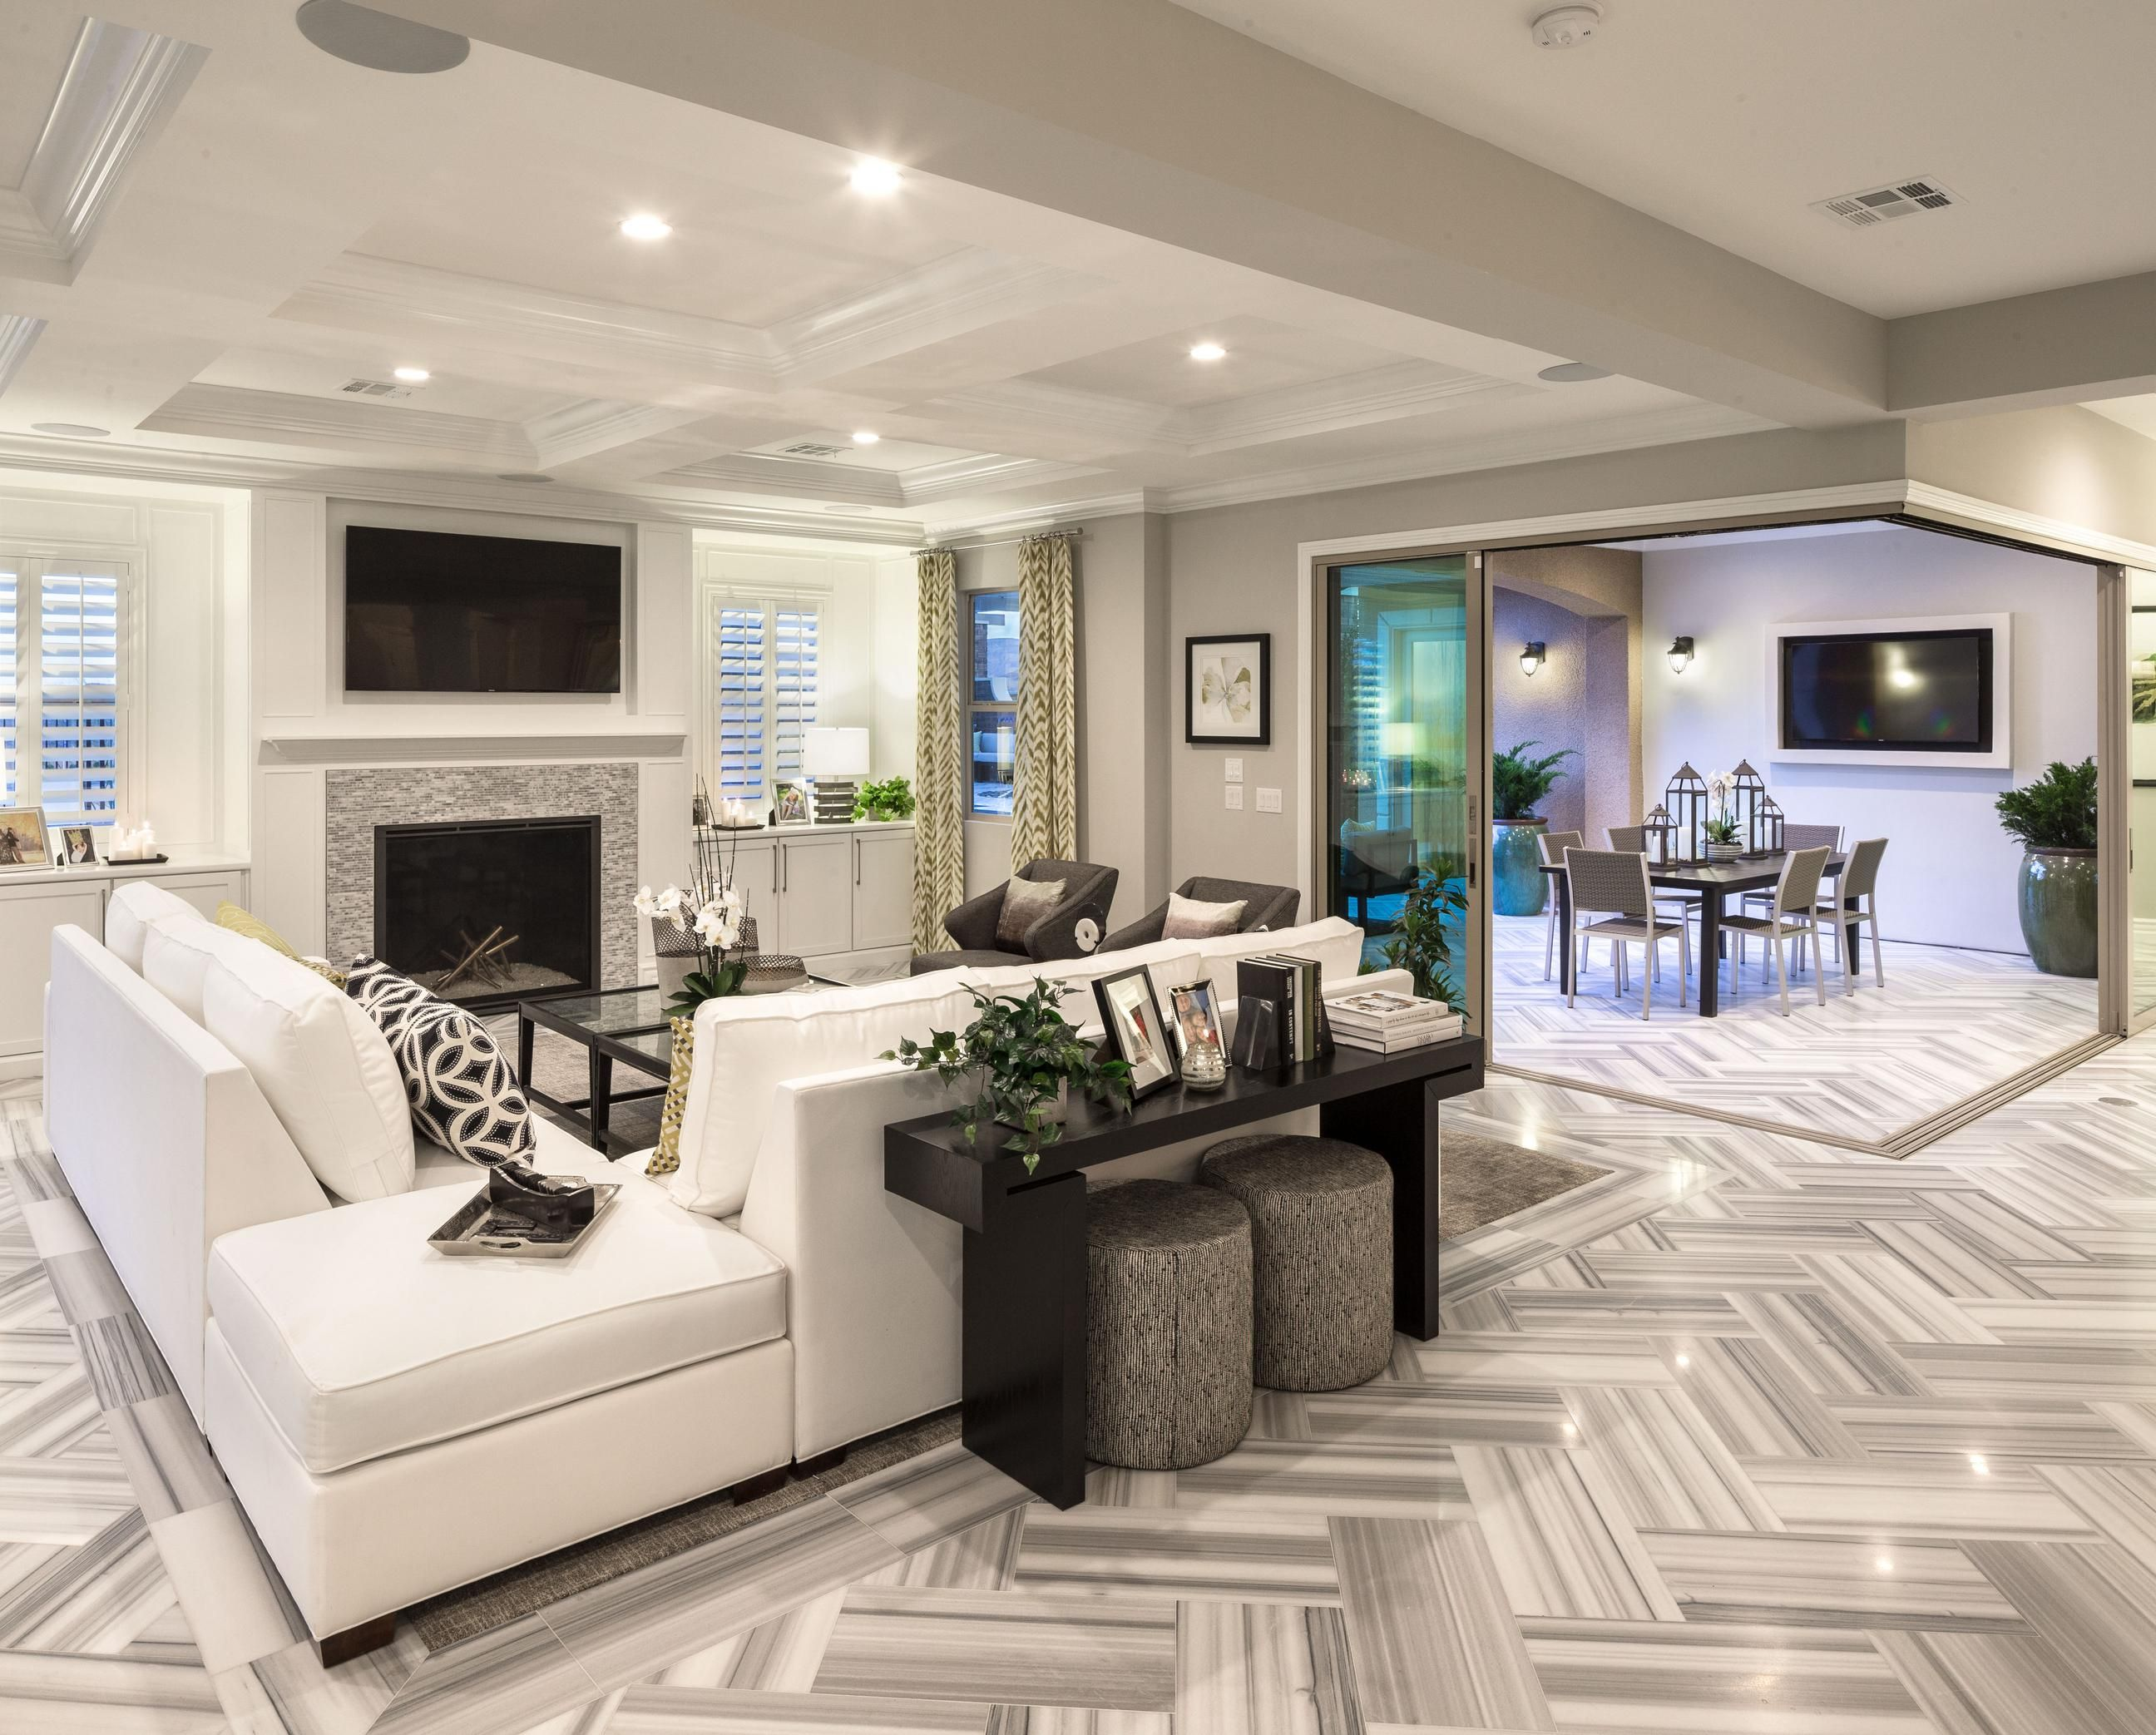 Enjoy this exquisitely spacious family room from the Los Altos Verano model  home in Las Veg… | Model home decorating, Mediterranean living rooms,  Family room design